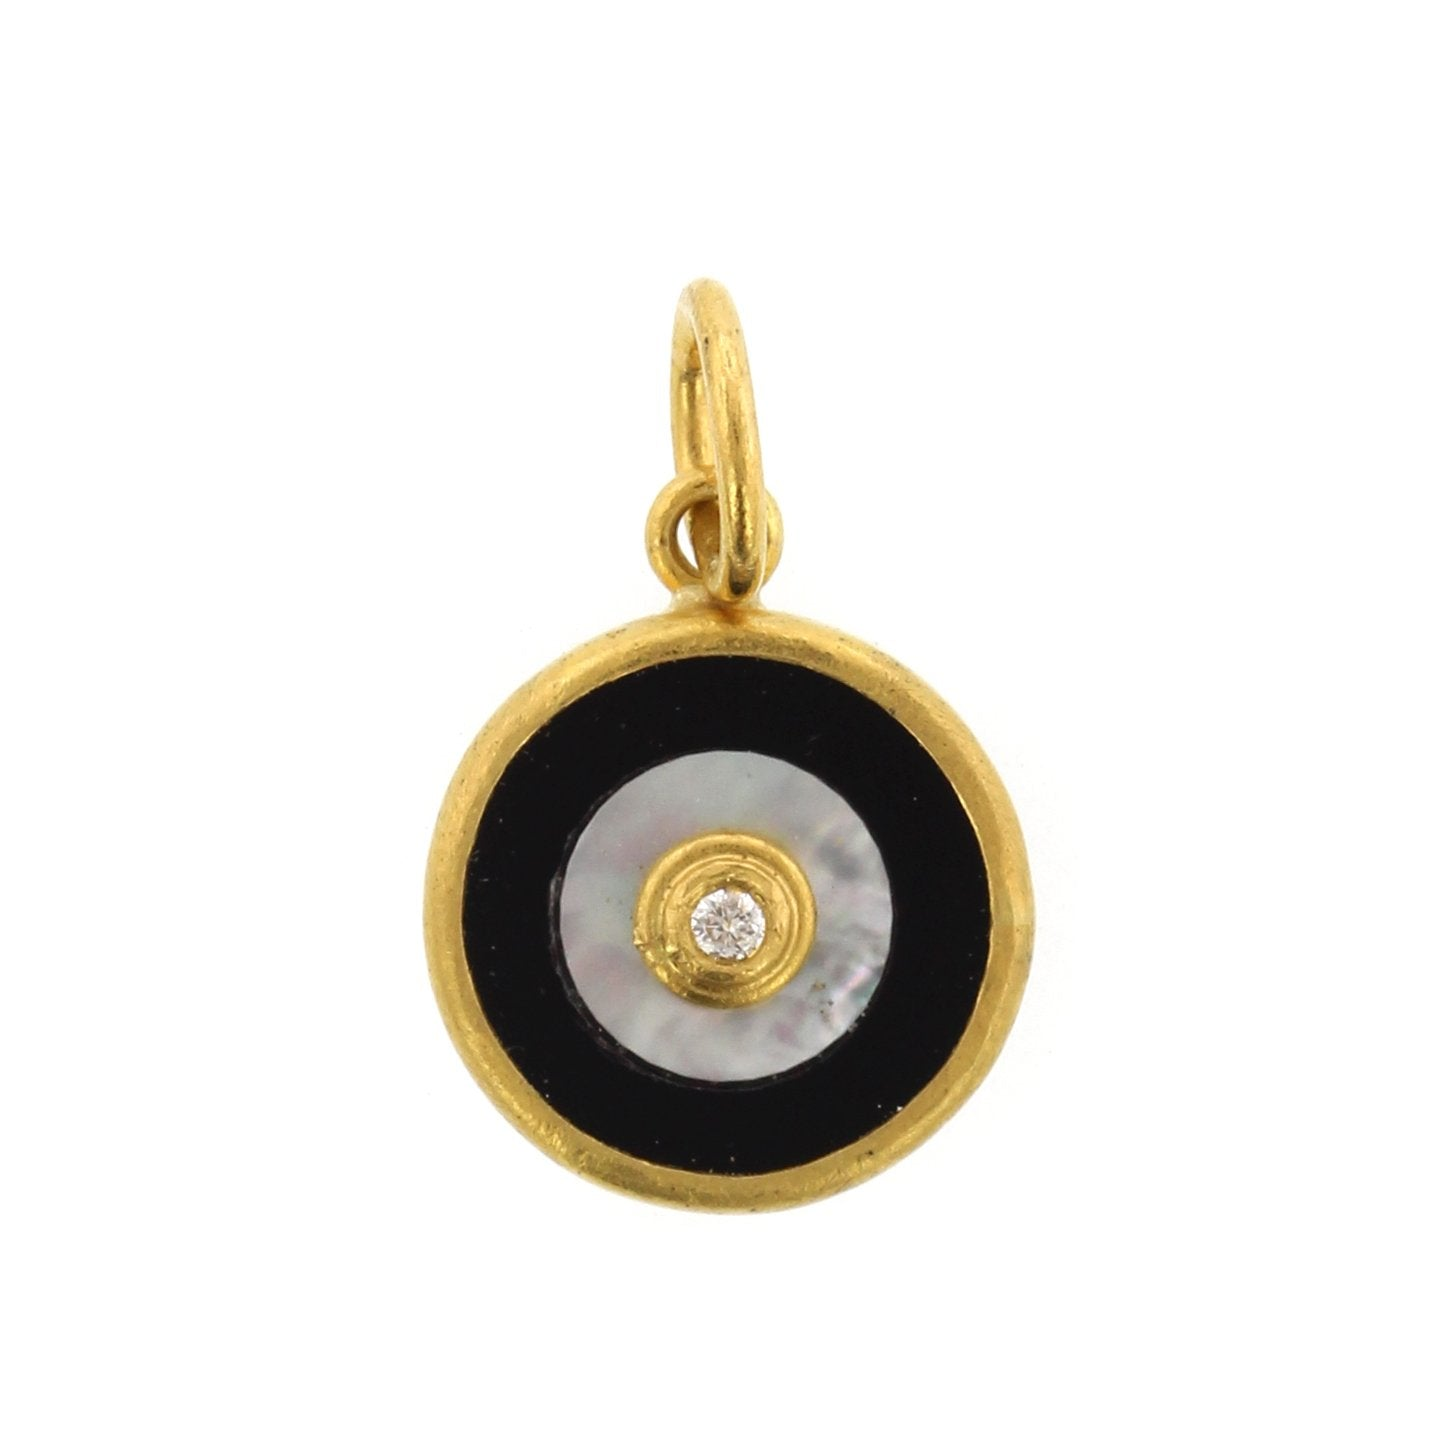 24K Yellow Gold and Sterling Silver Quartz Evil Eye Charm